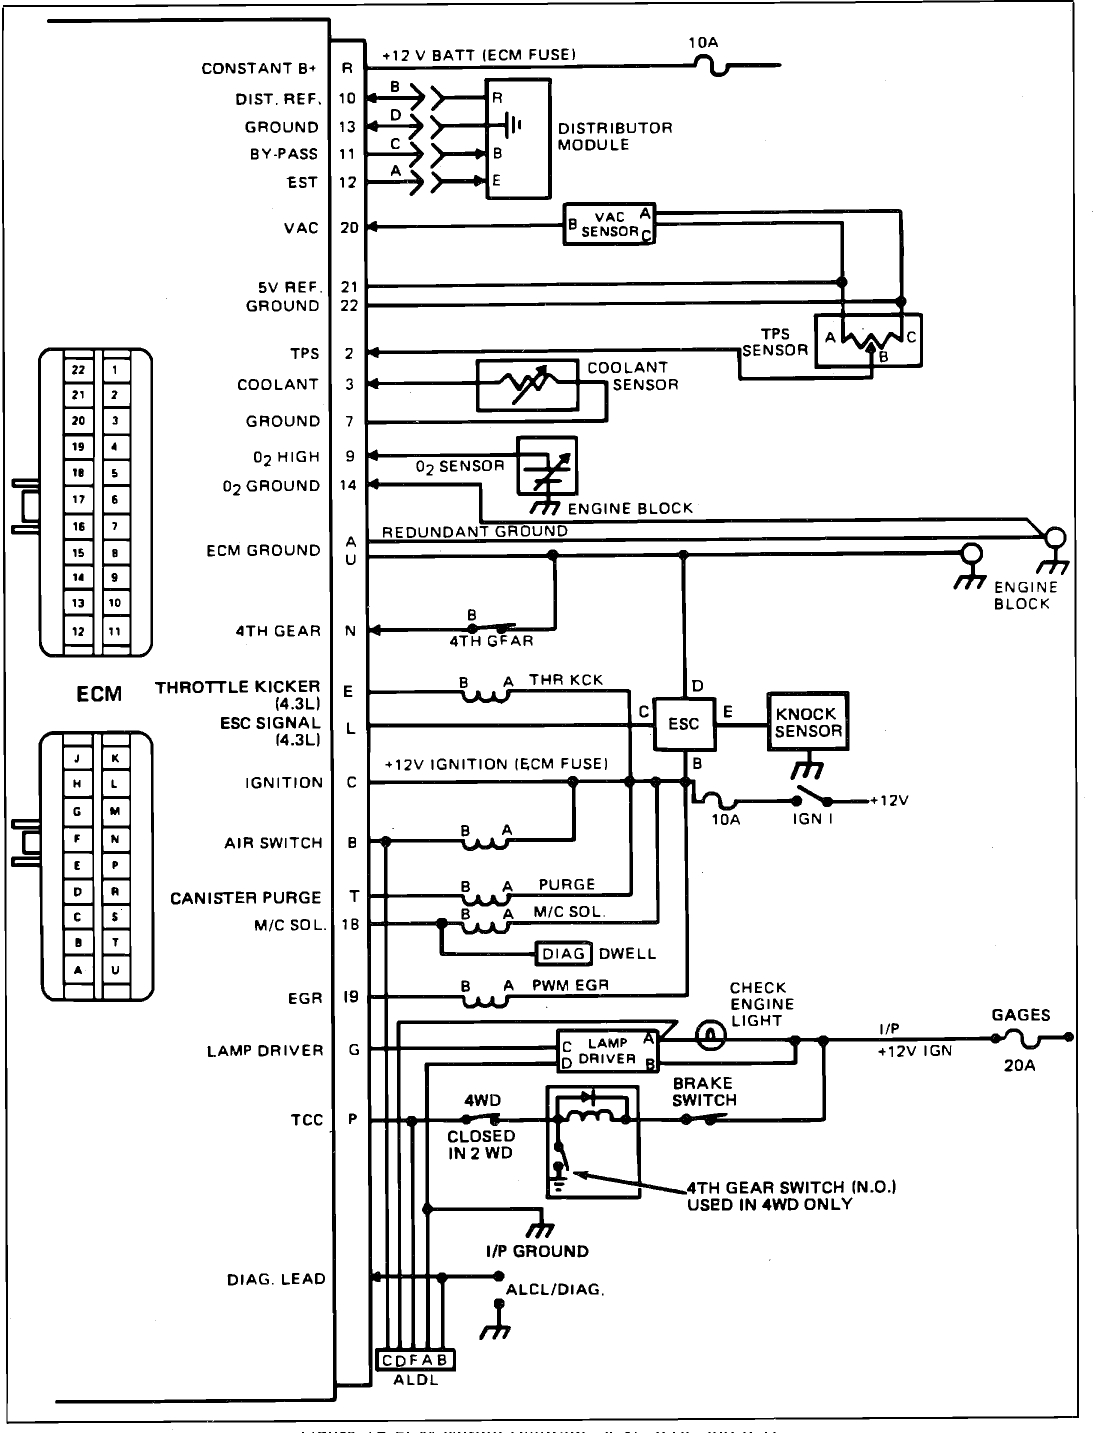 [SCHEMATICS_48EU]  1991 Chevy Silverado Ignition Wiring Diagram Chevy Silverado Fuse Box  Diagram - ultraman.art-40.autoprestige-utilitaire.fr | Fuse Box Diagram For A 1989 Chevy K2500 4x4 |  | Wiring Diagram and Schematics